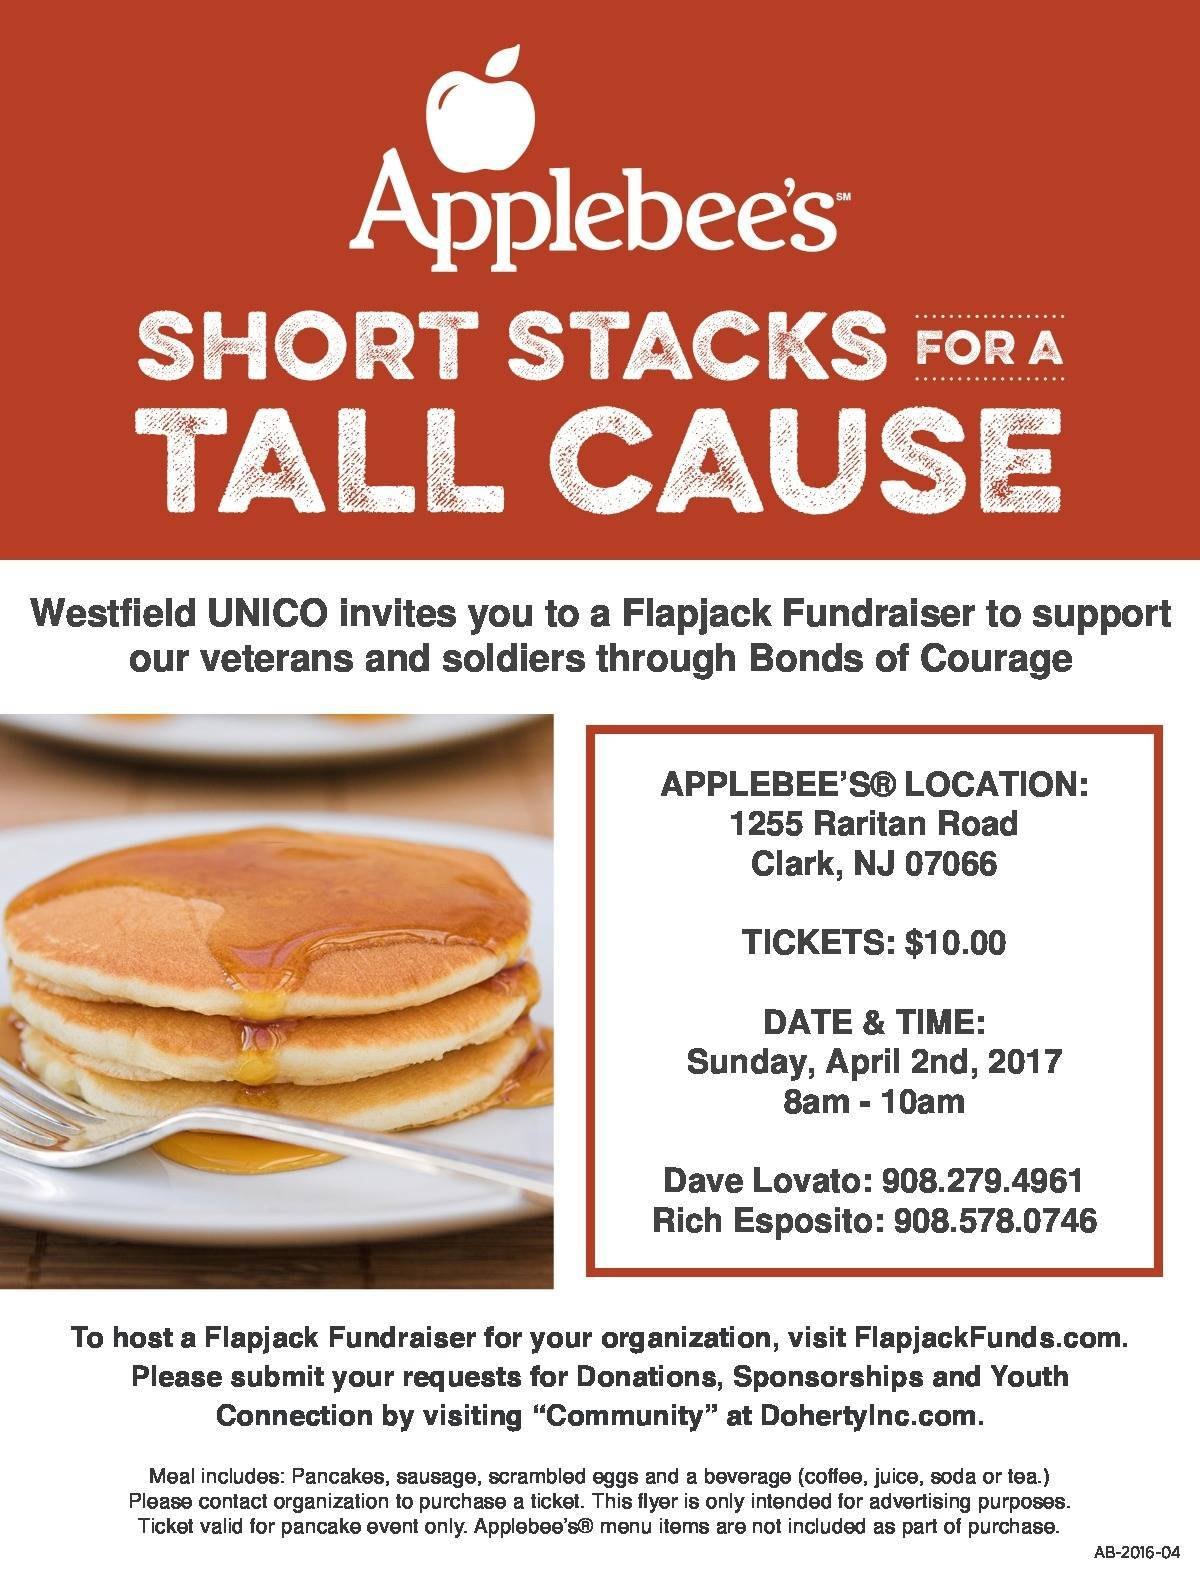 dcc1fc91bfbcecfd1338_Applebees_Dave_Rich_Flyer.JPG